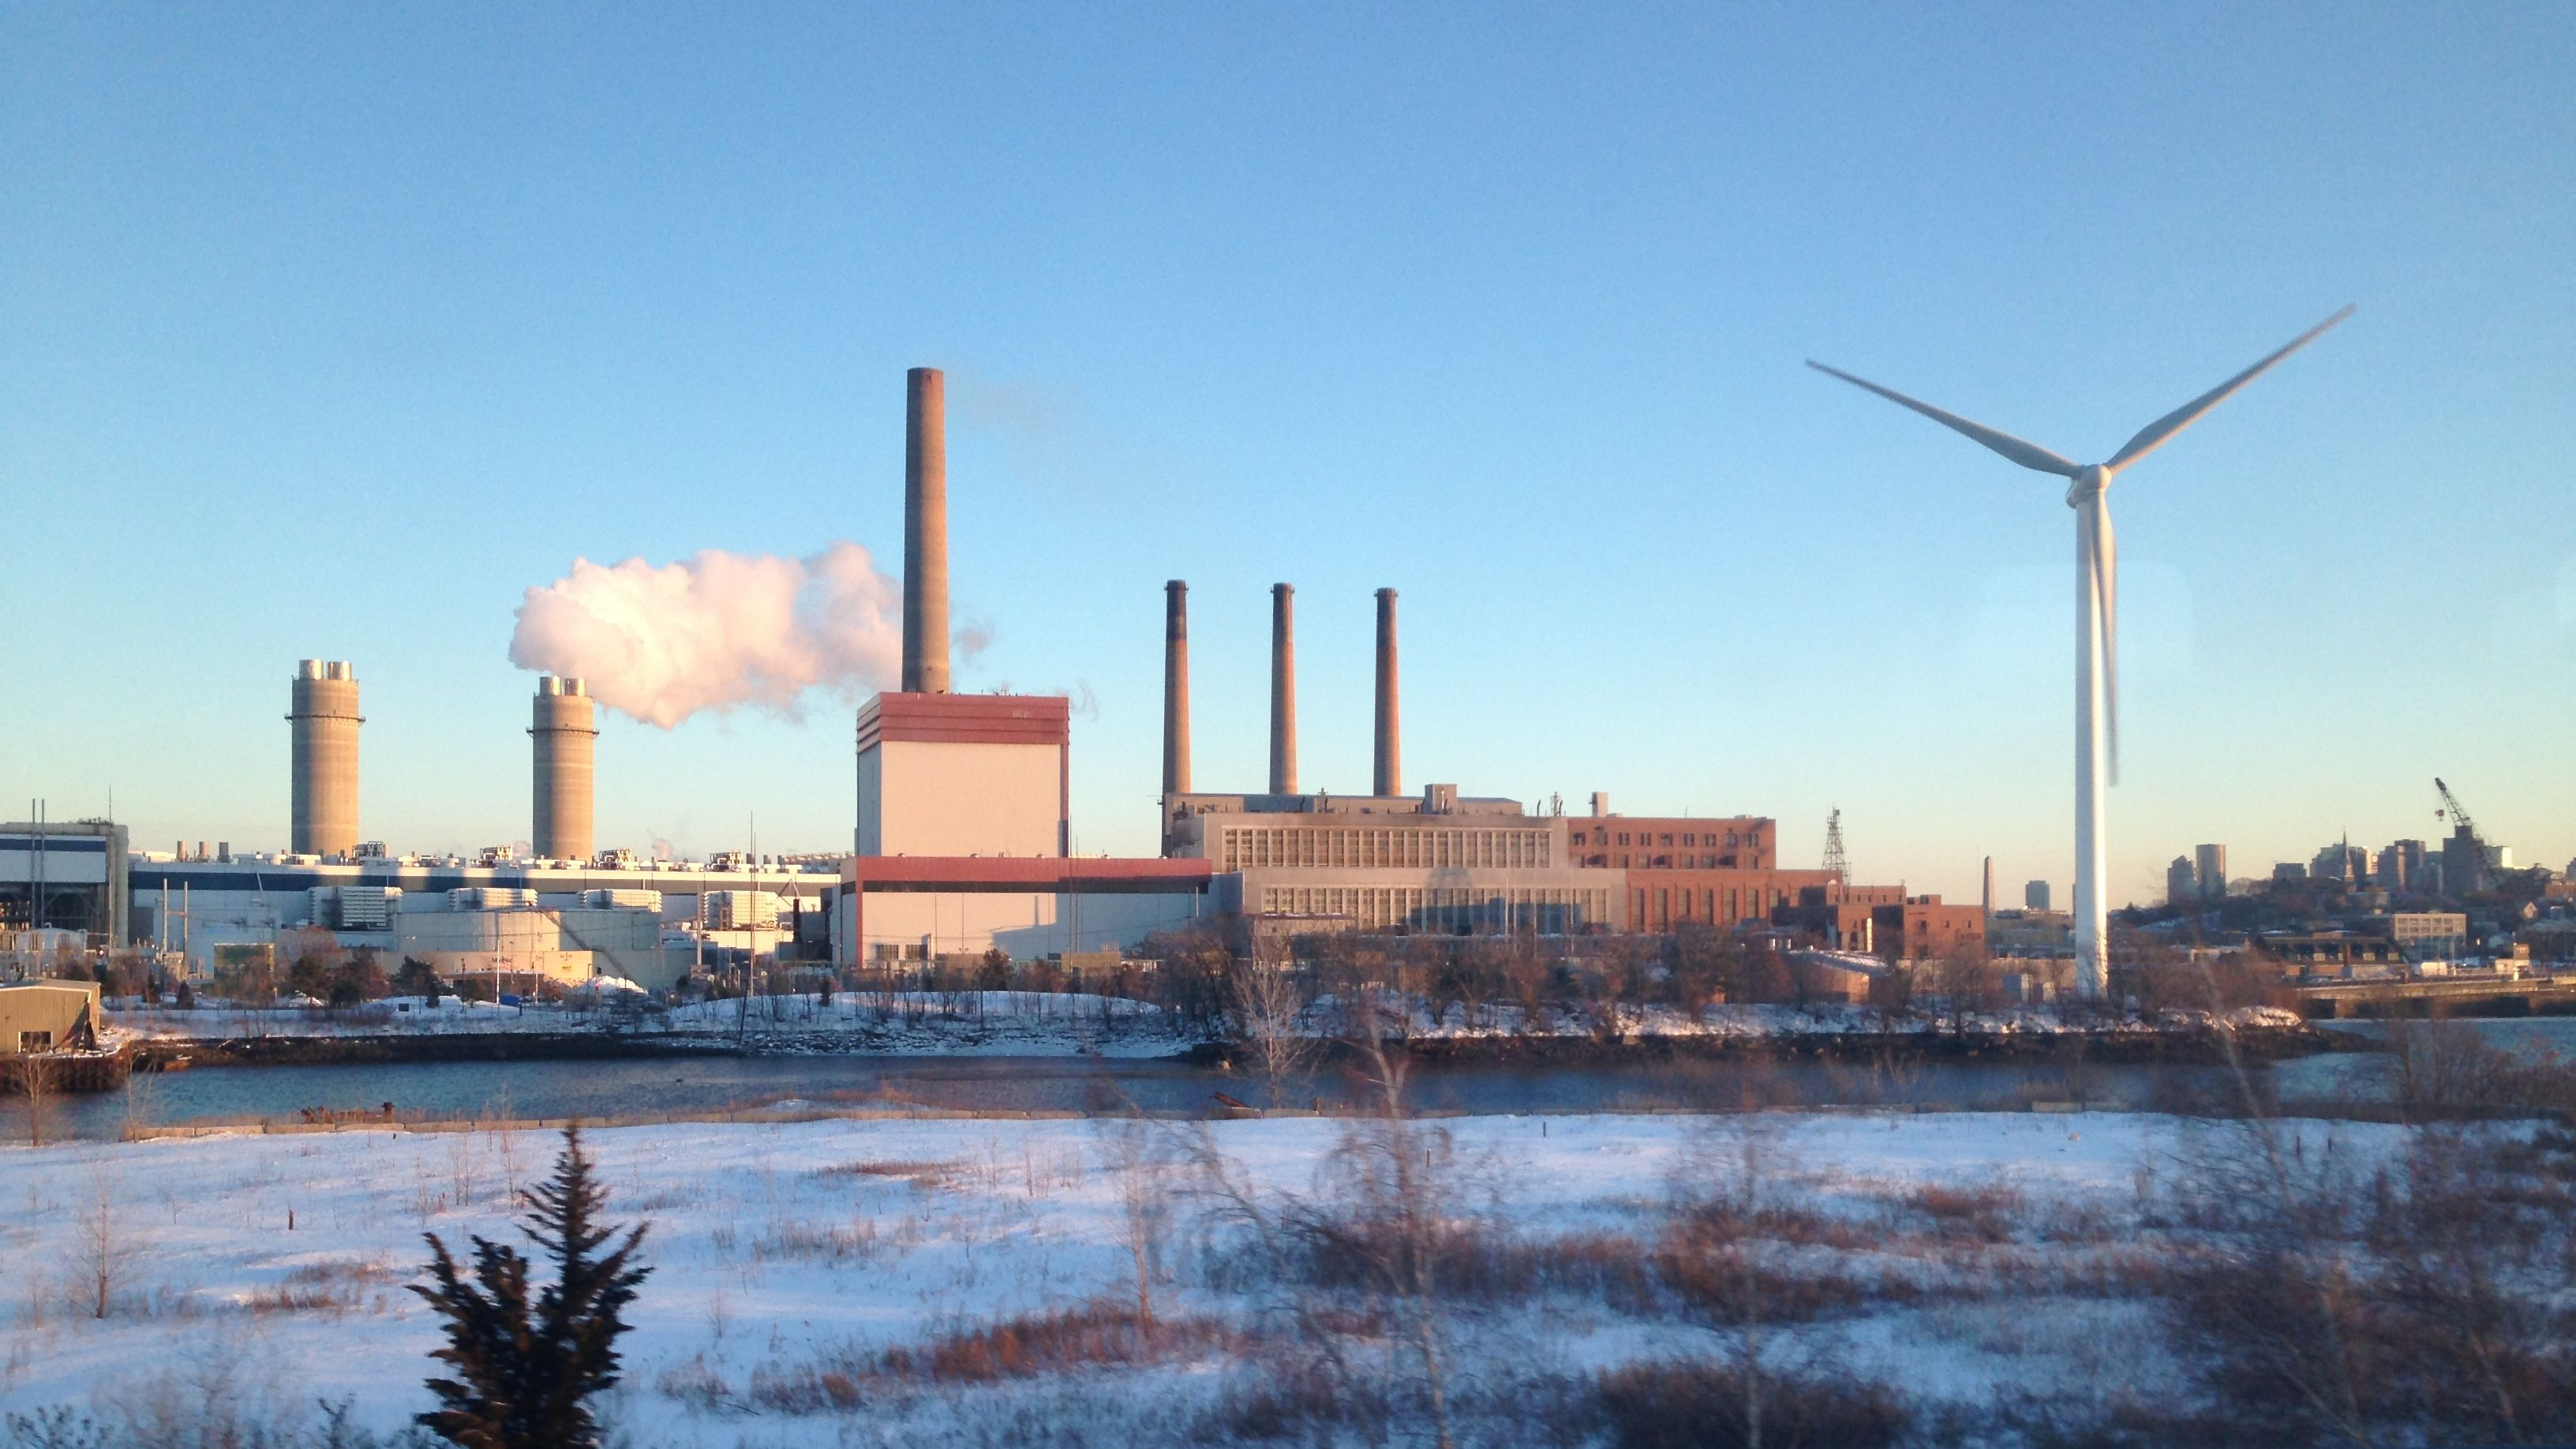 File:Mystic Generating Station, Everett MA.jpg - Wikimedia Commons